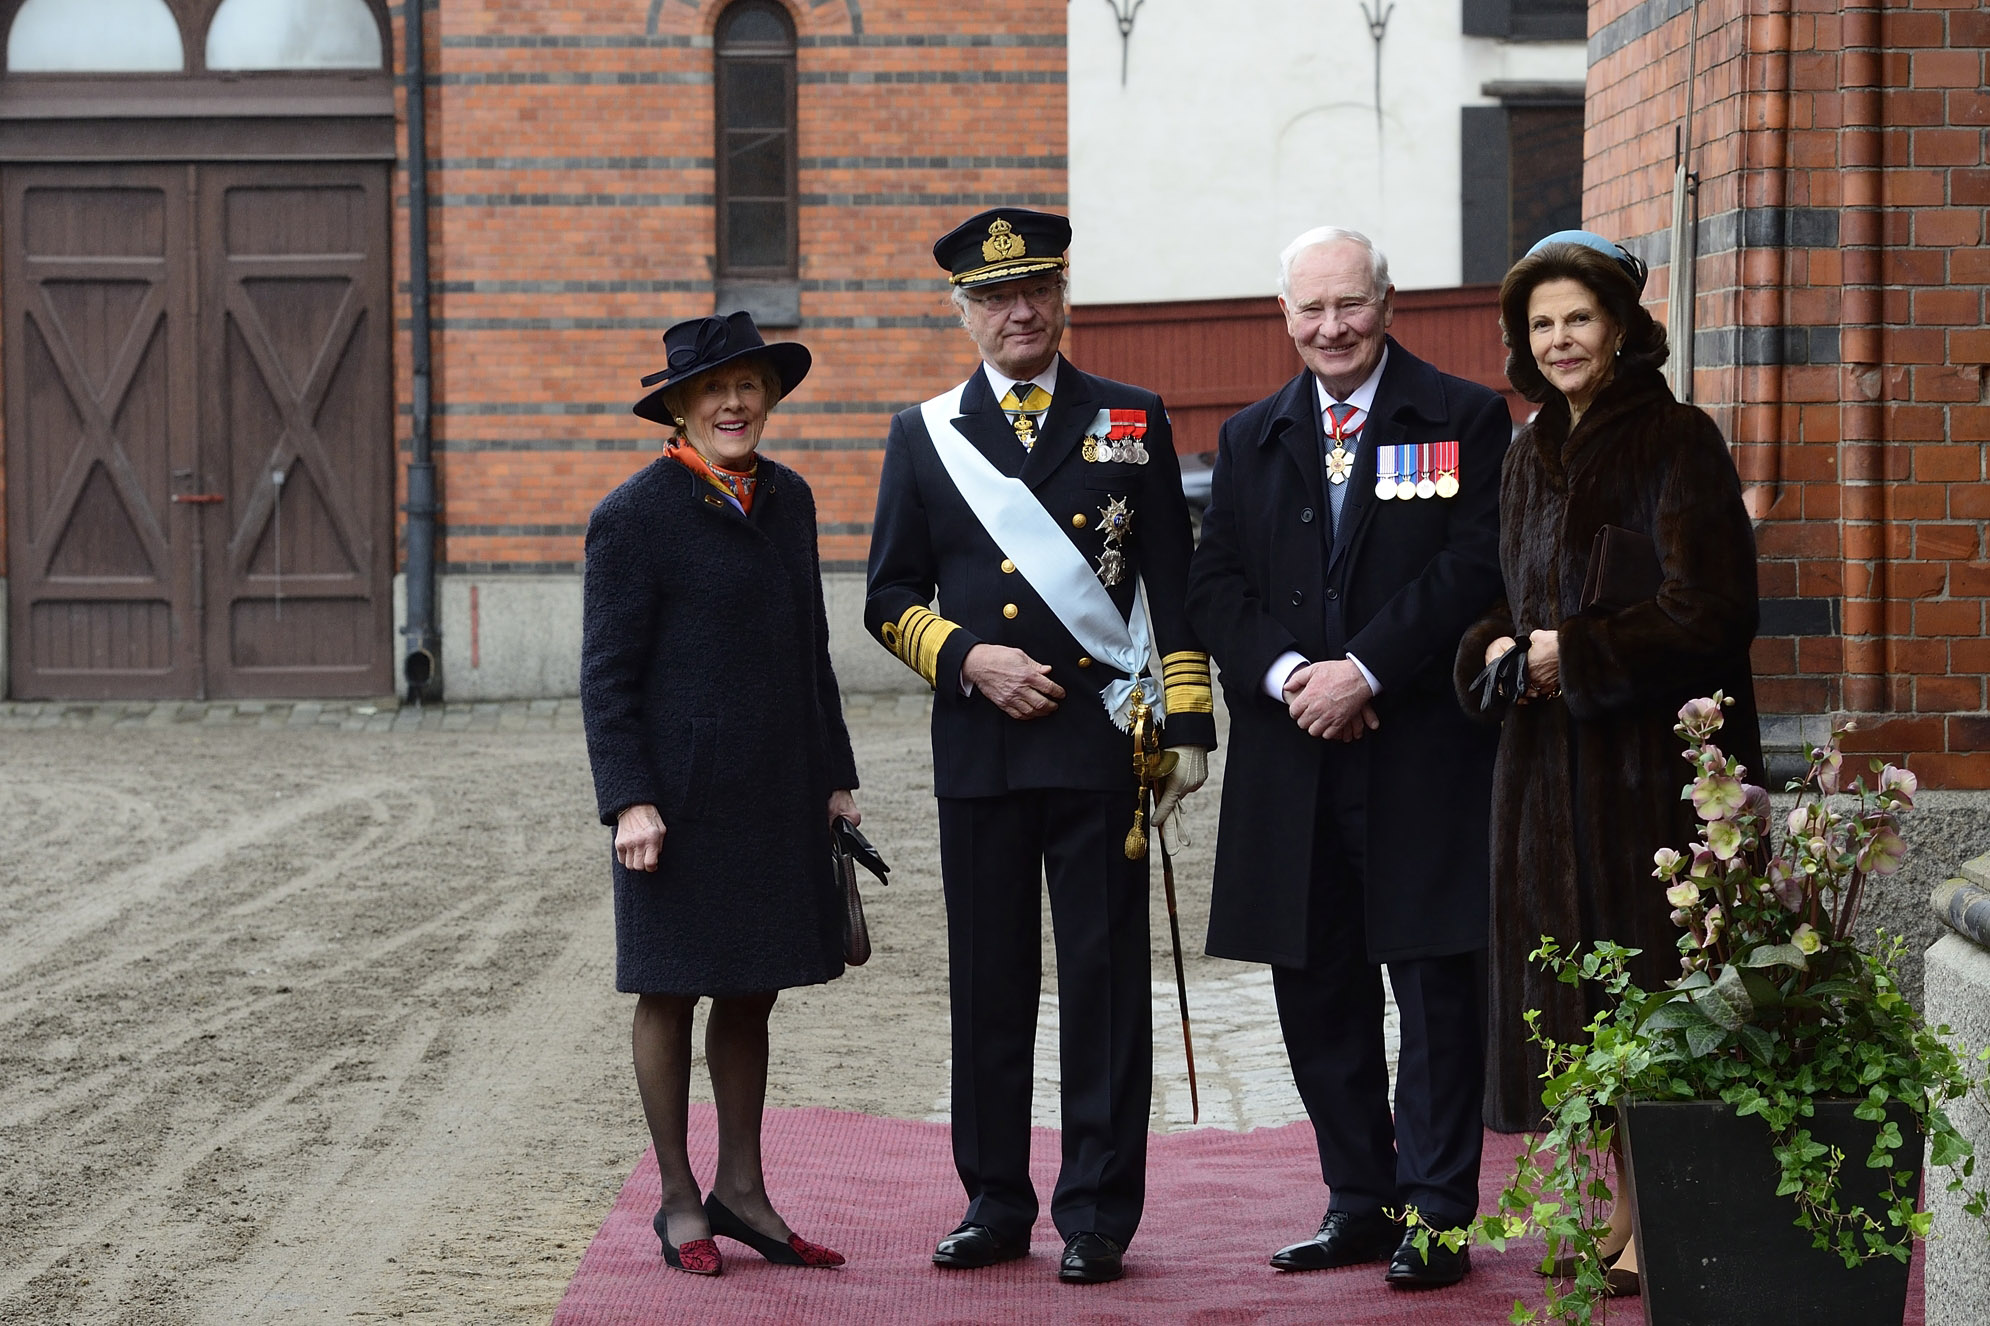 Their Excellencies started their first day in Sweden by meeting with Their Majesties King Carl XVI Gustaf and Queen Silvia.